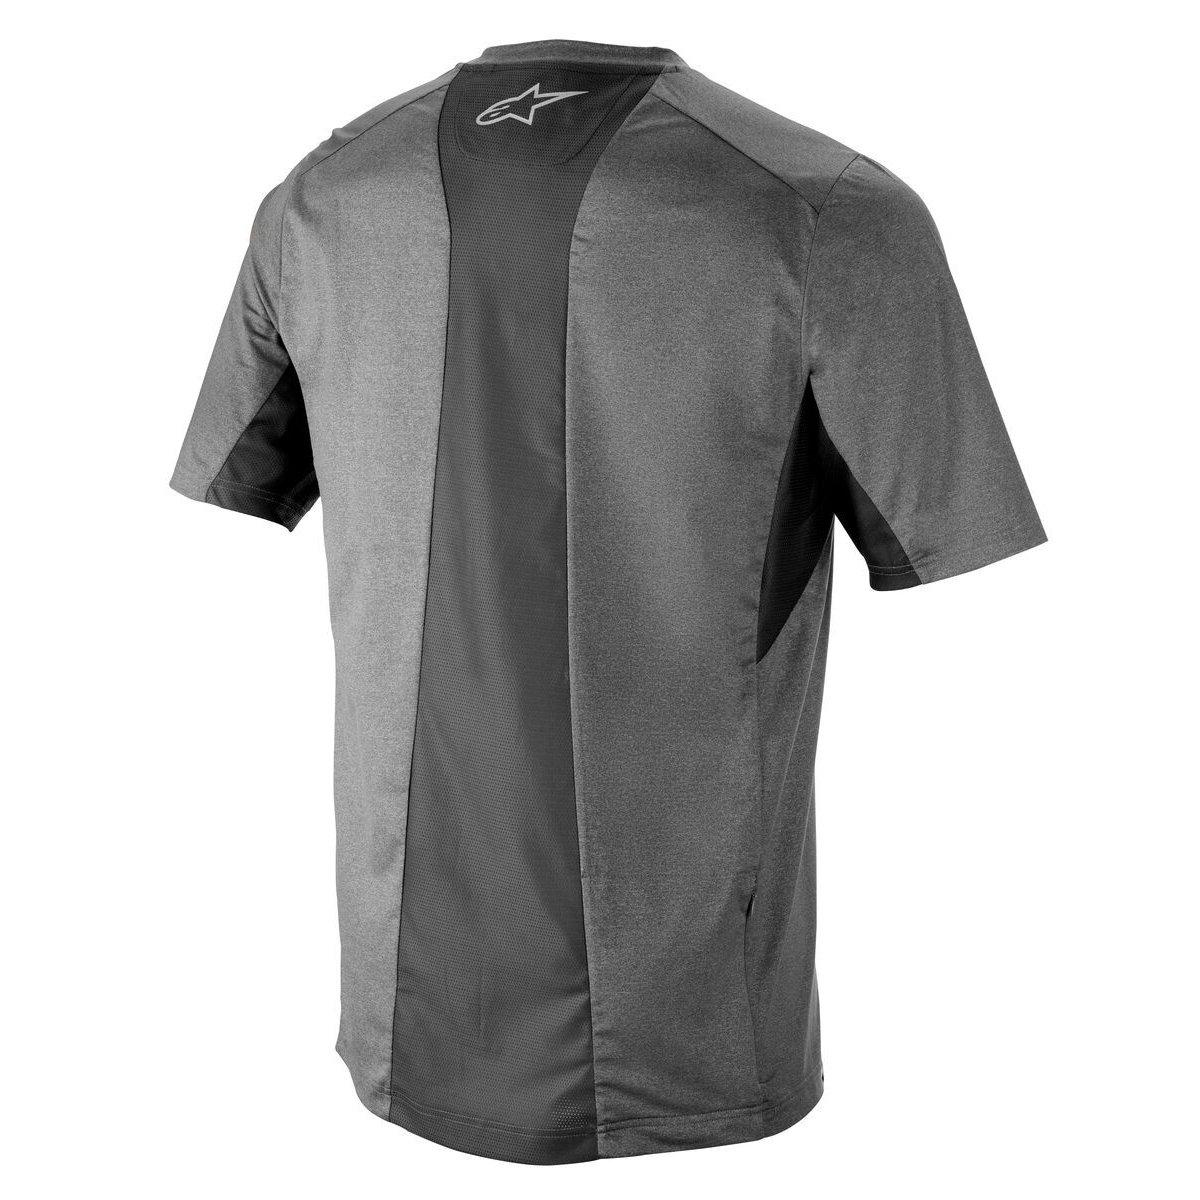 Alps 6.0 Short Sleeve Jerseys